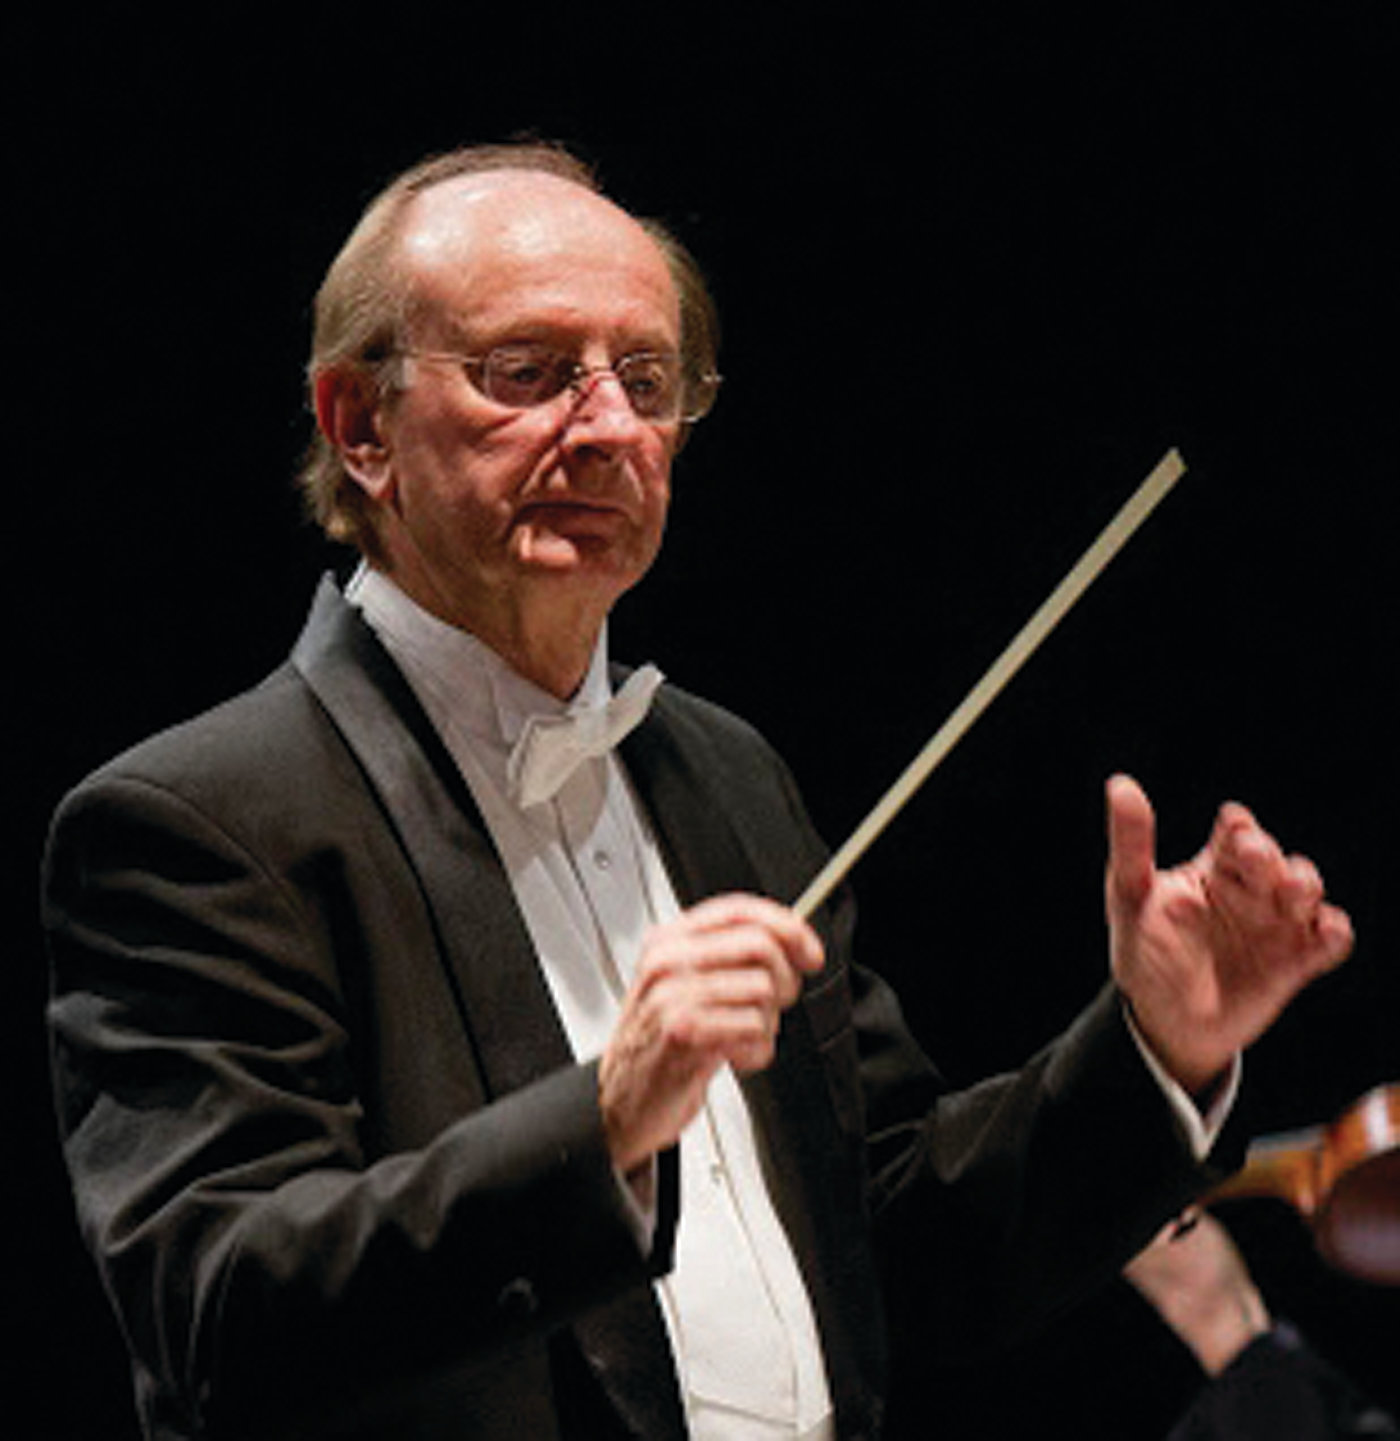 LEADING THE WAY: Conductor Edward Markward will lead the Chamber Orchestra of Barrington during its performance on Feb. 17.